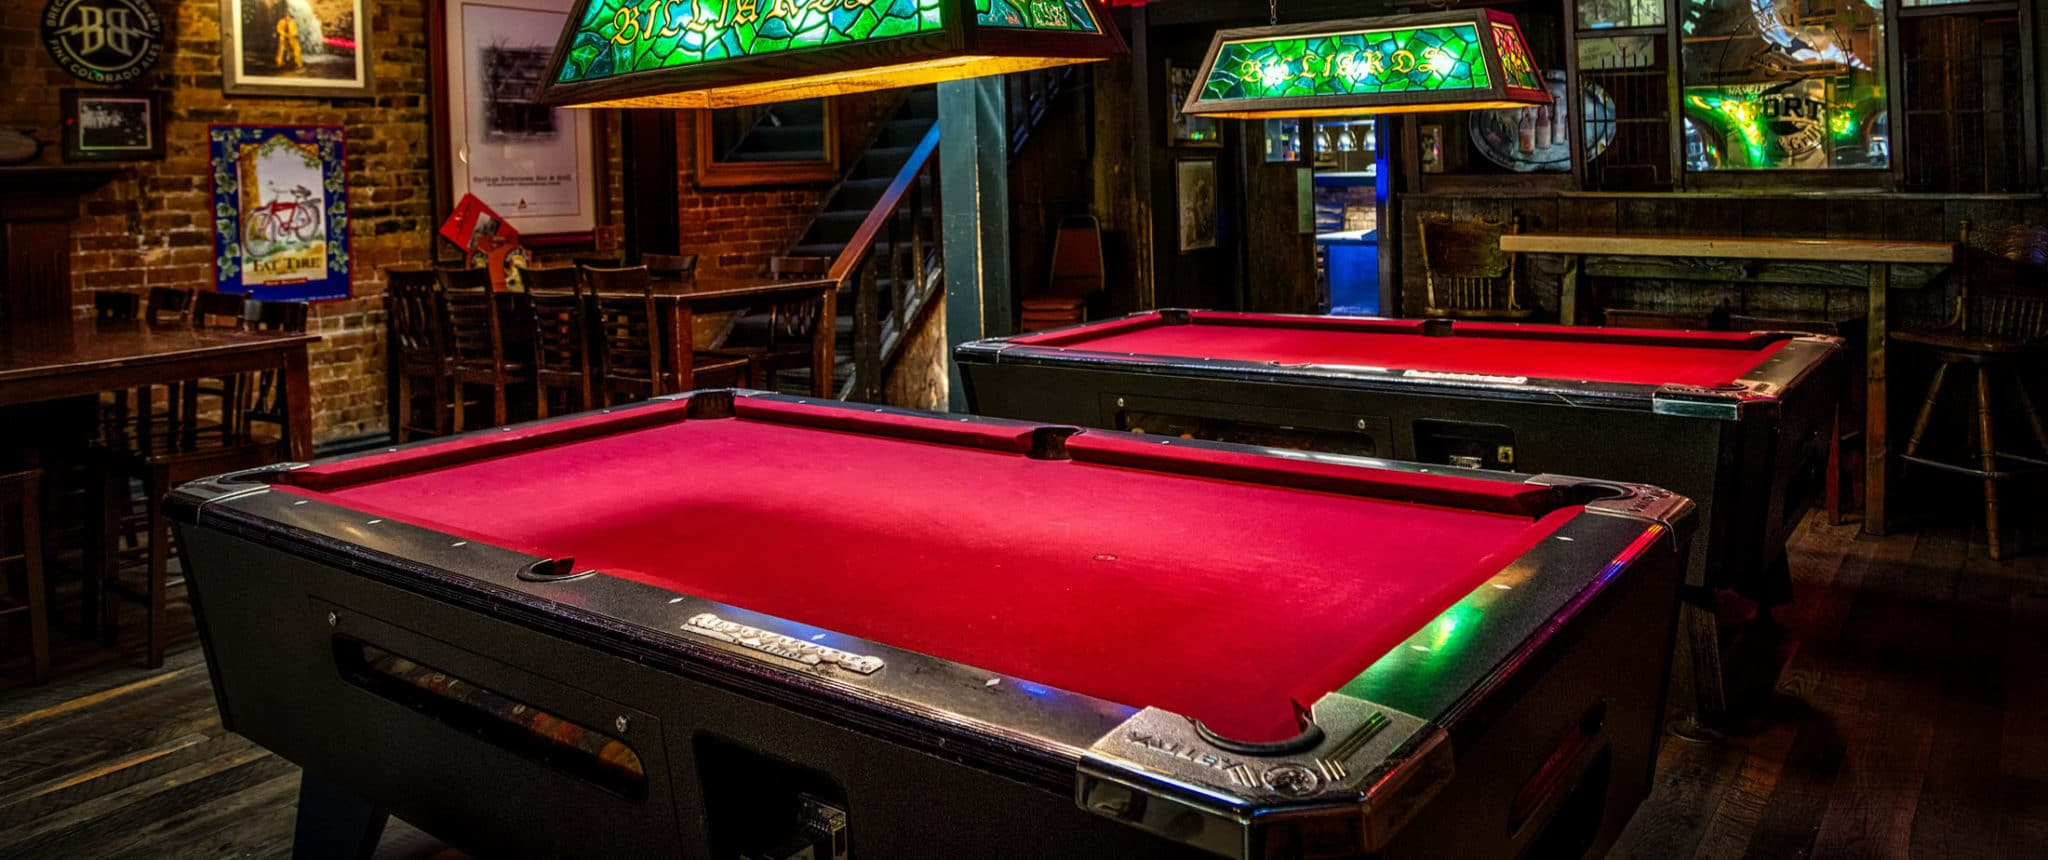 Used Coin Operated Bar Pool Tables We Strive To Make Each Used Bar - Pool table rental nyc